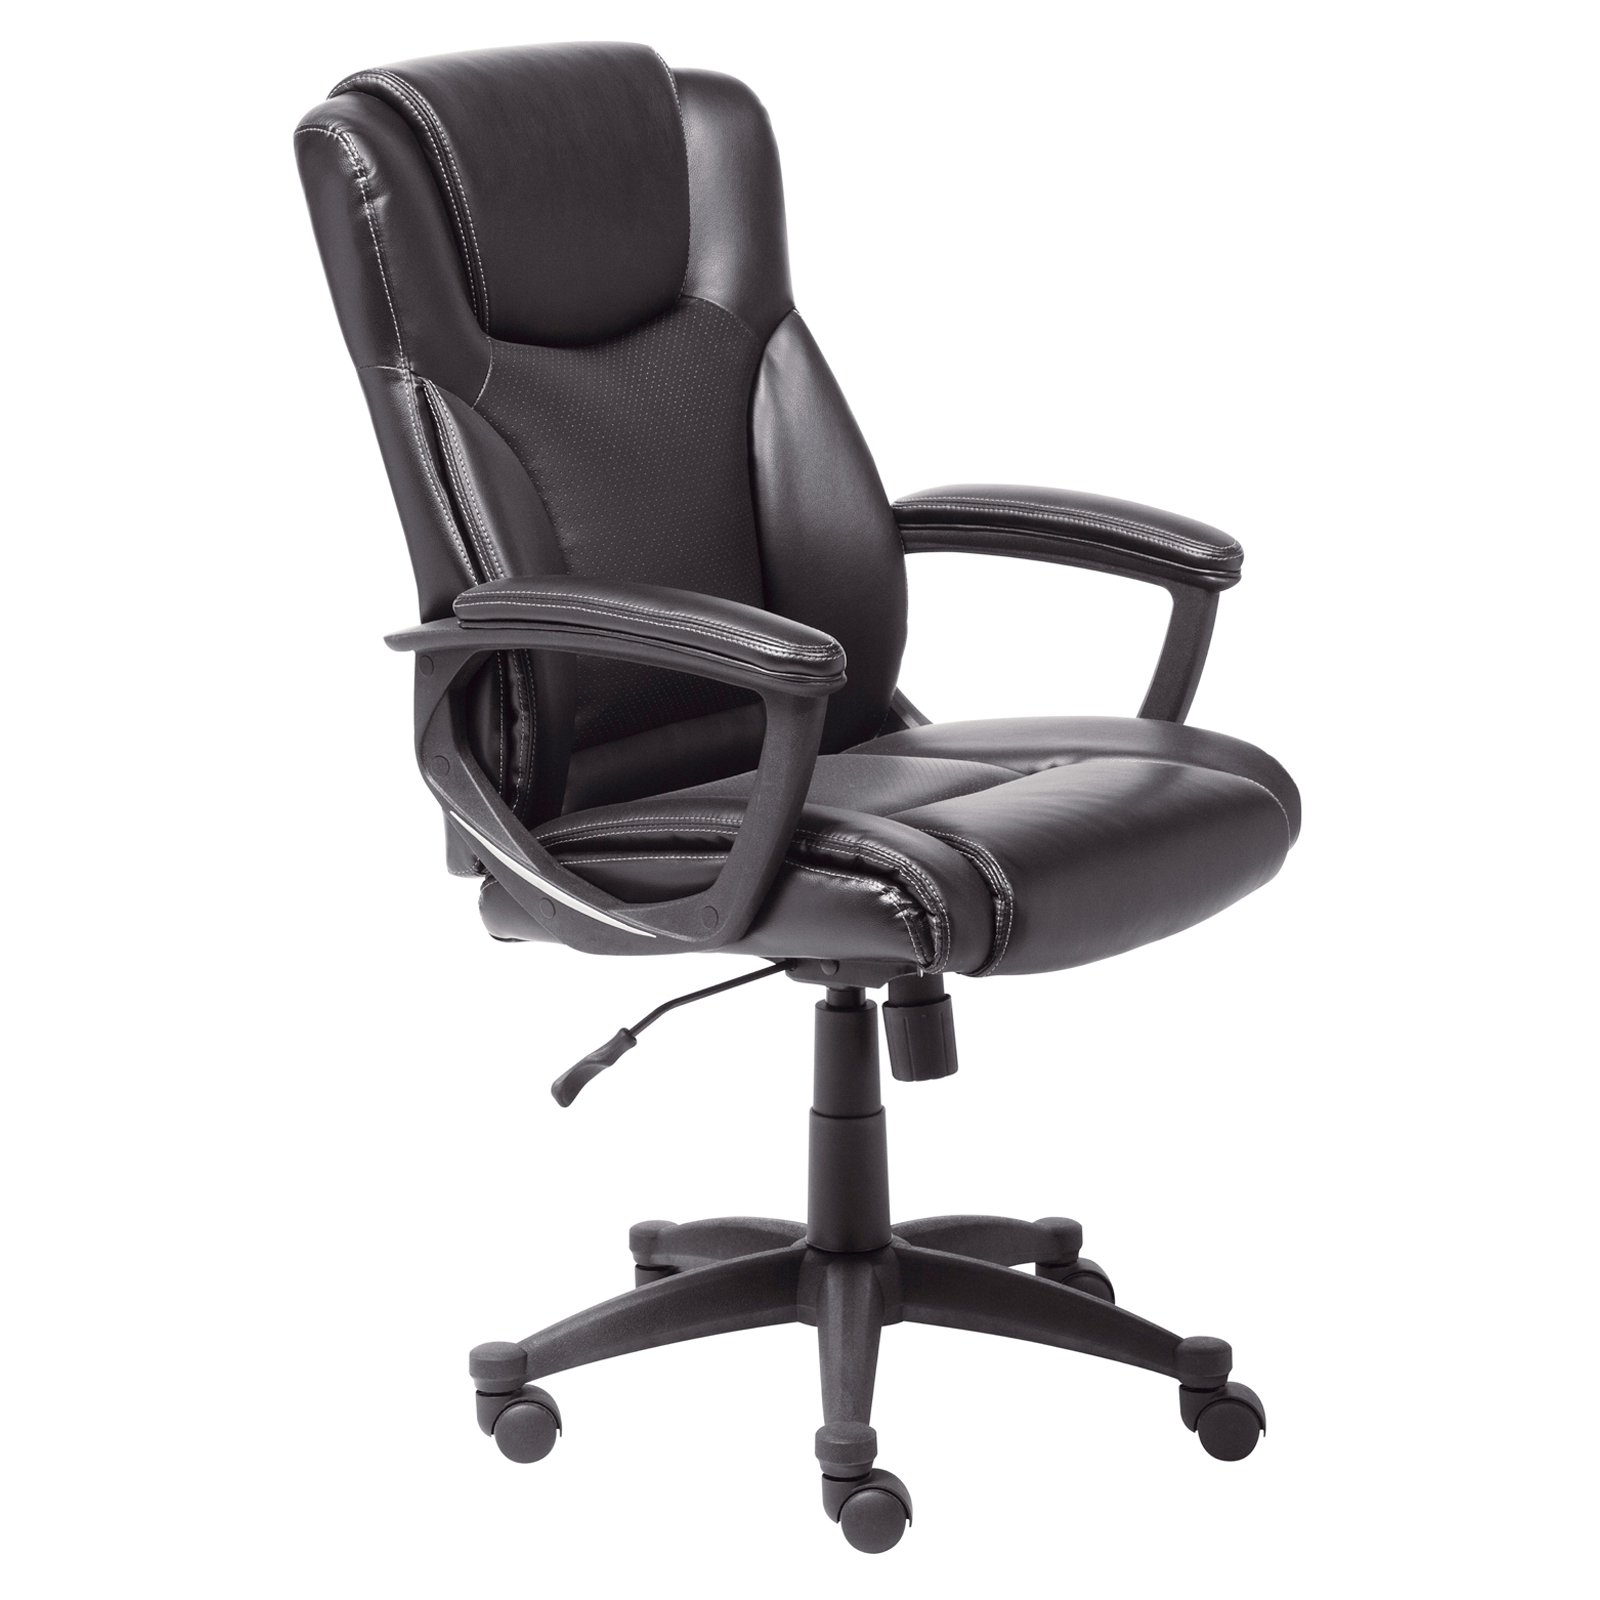 Serta Big and Tall Smart Layers Executive fice Chair Blissfully